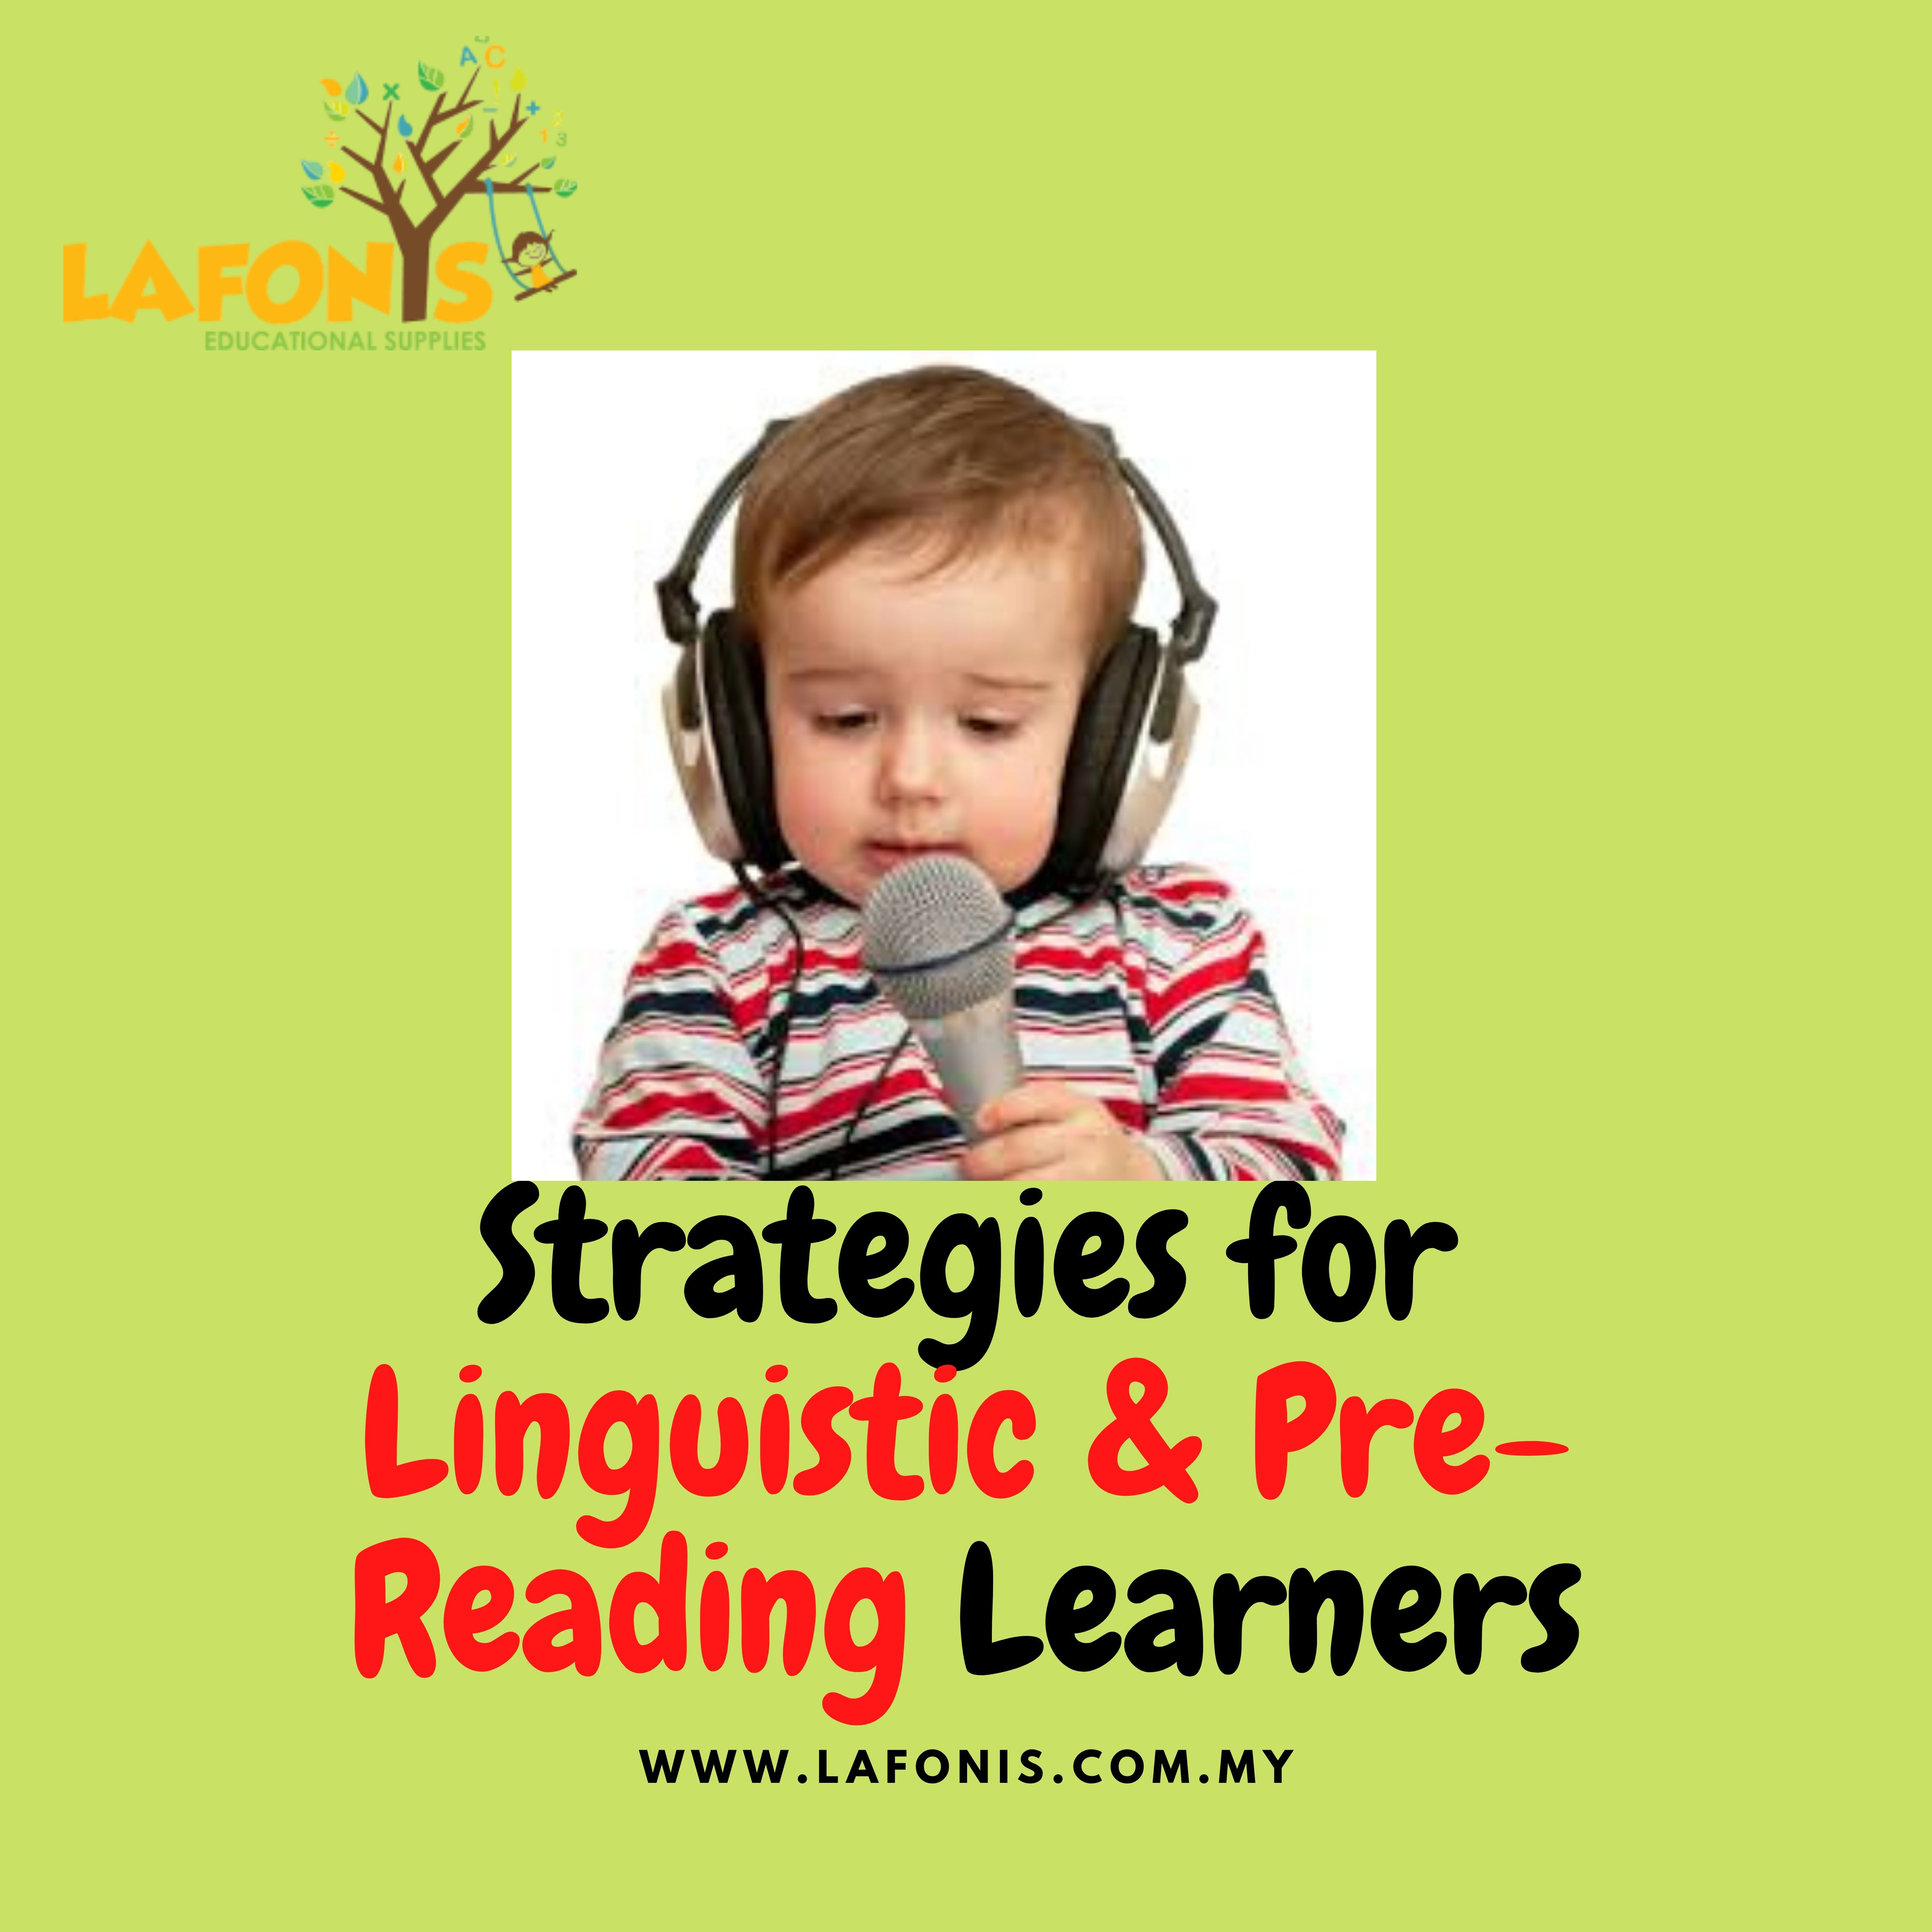 Linguistic and Pre-reading skills